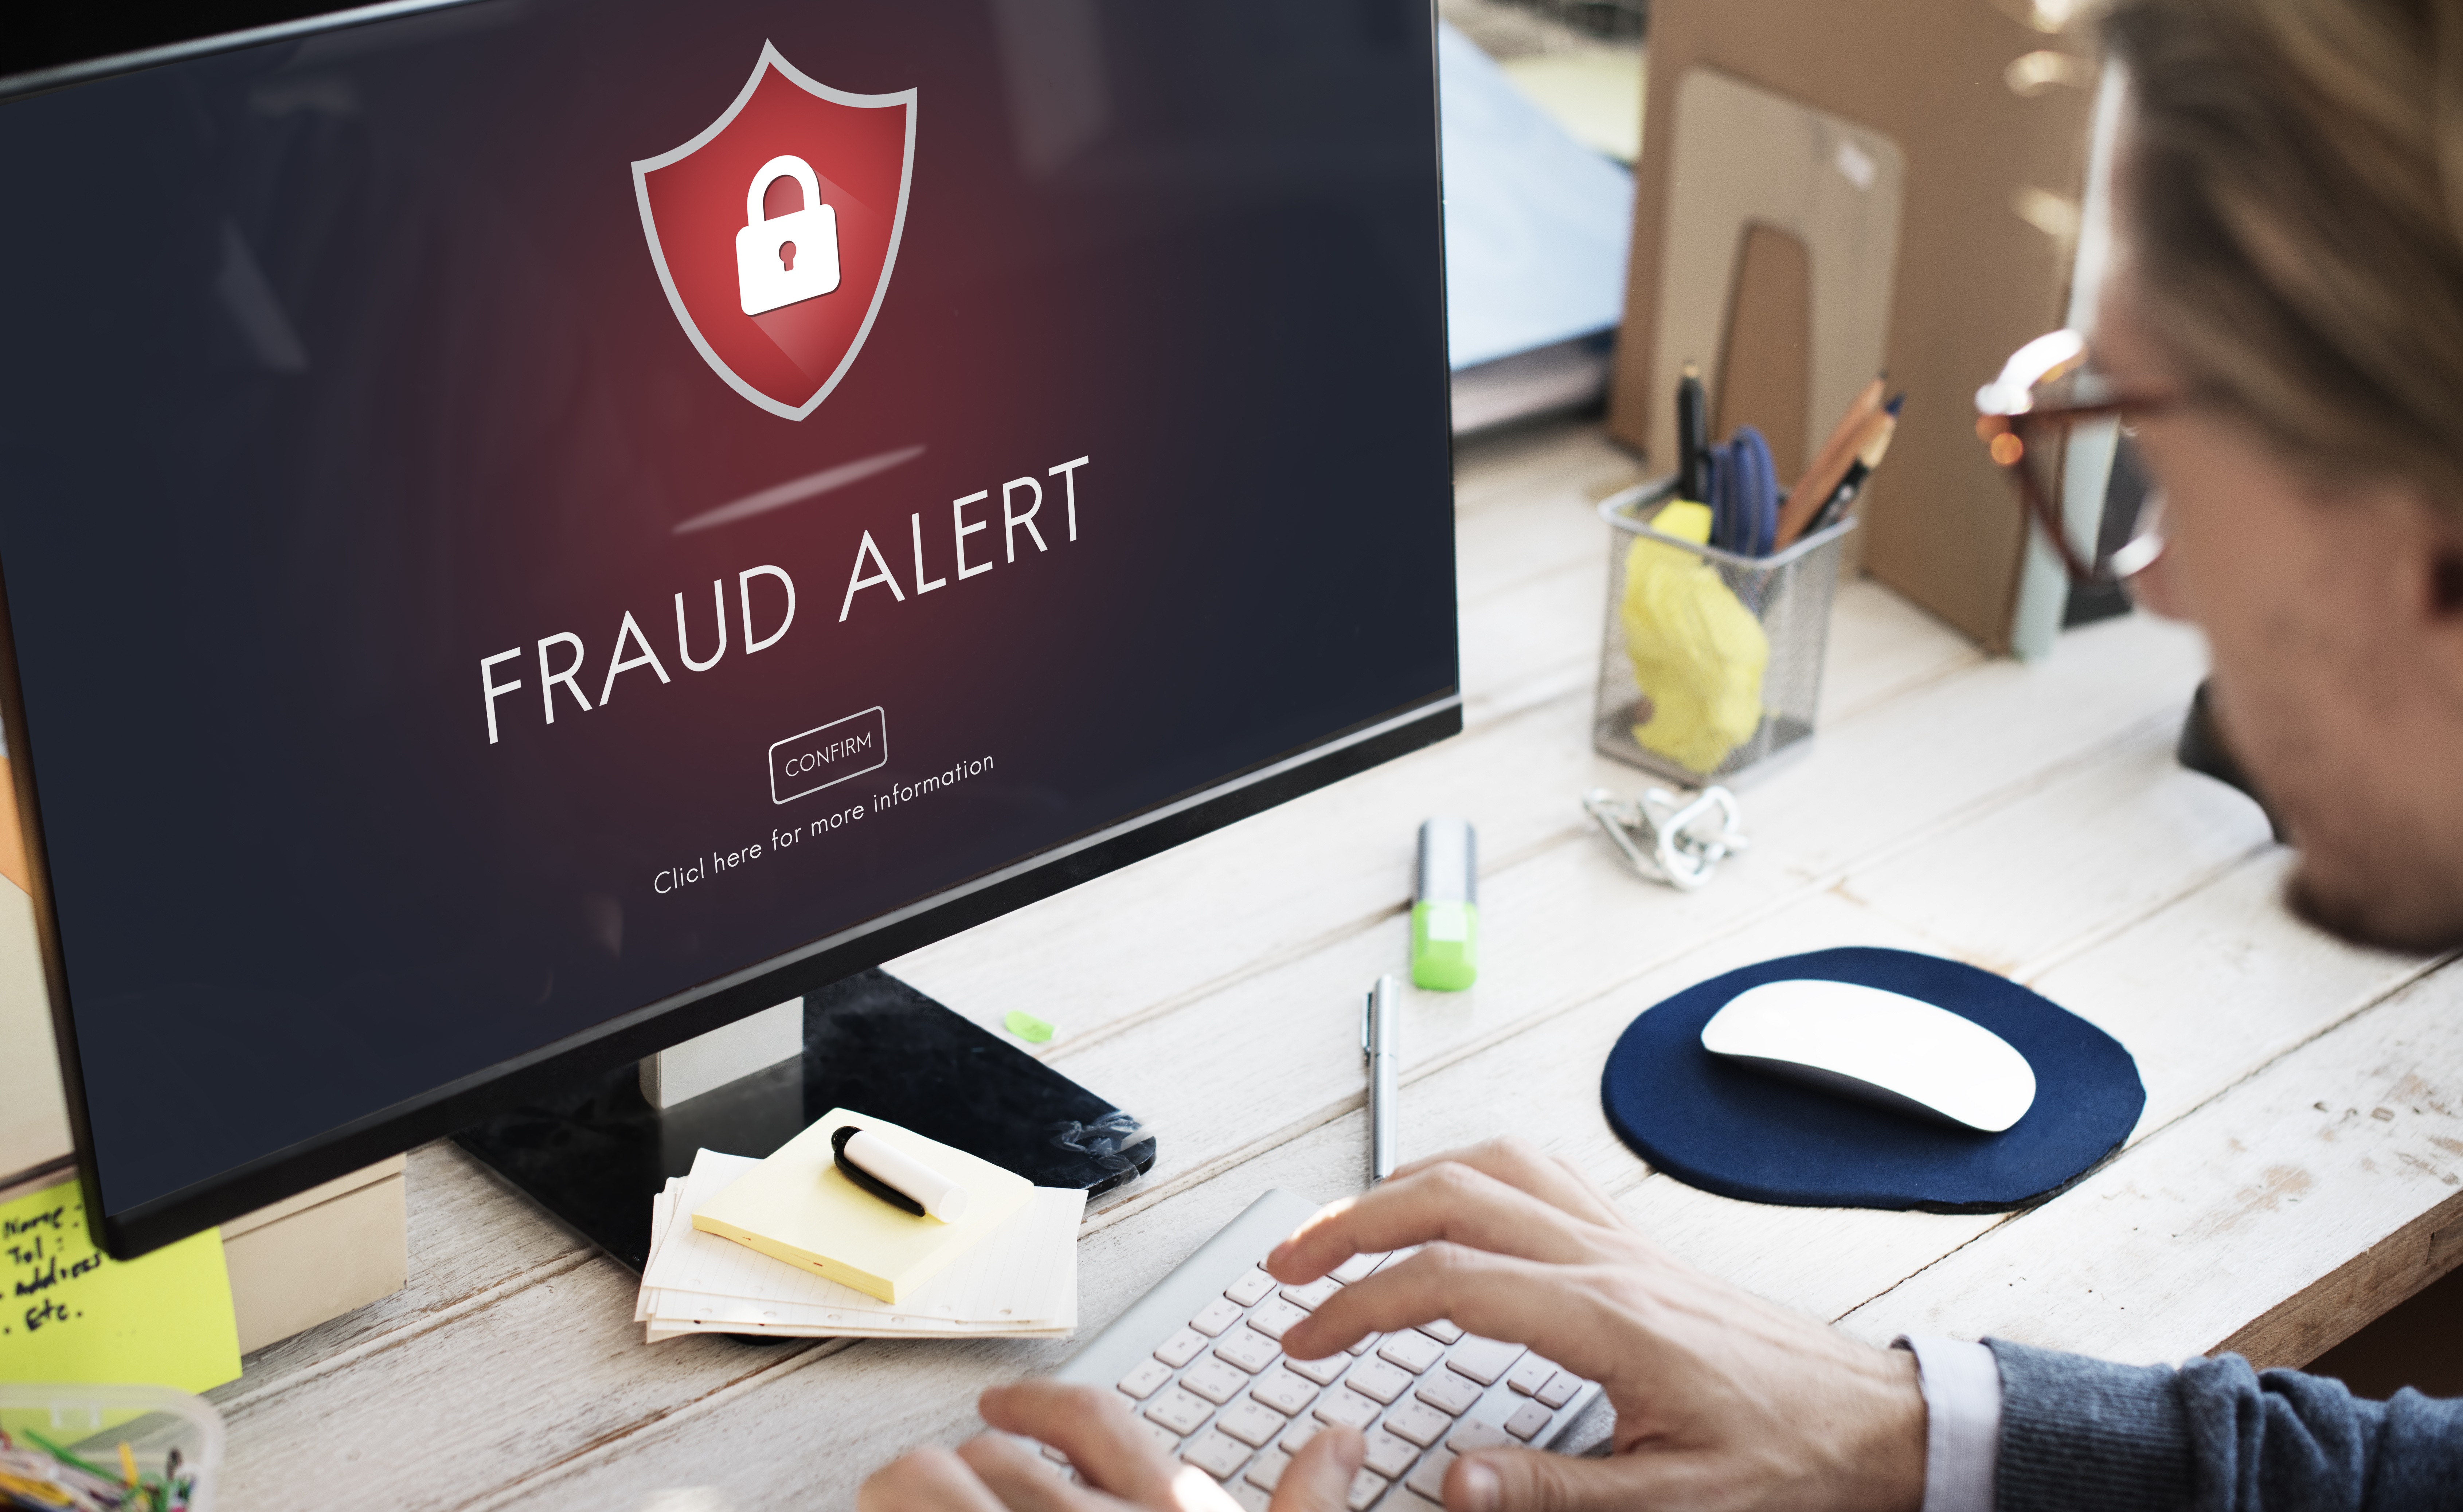 How to Respond to an Unemployment Scam